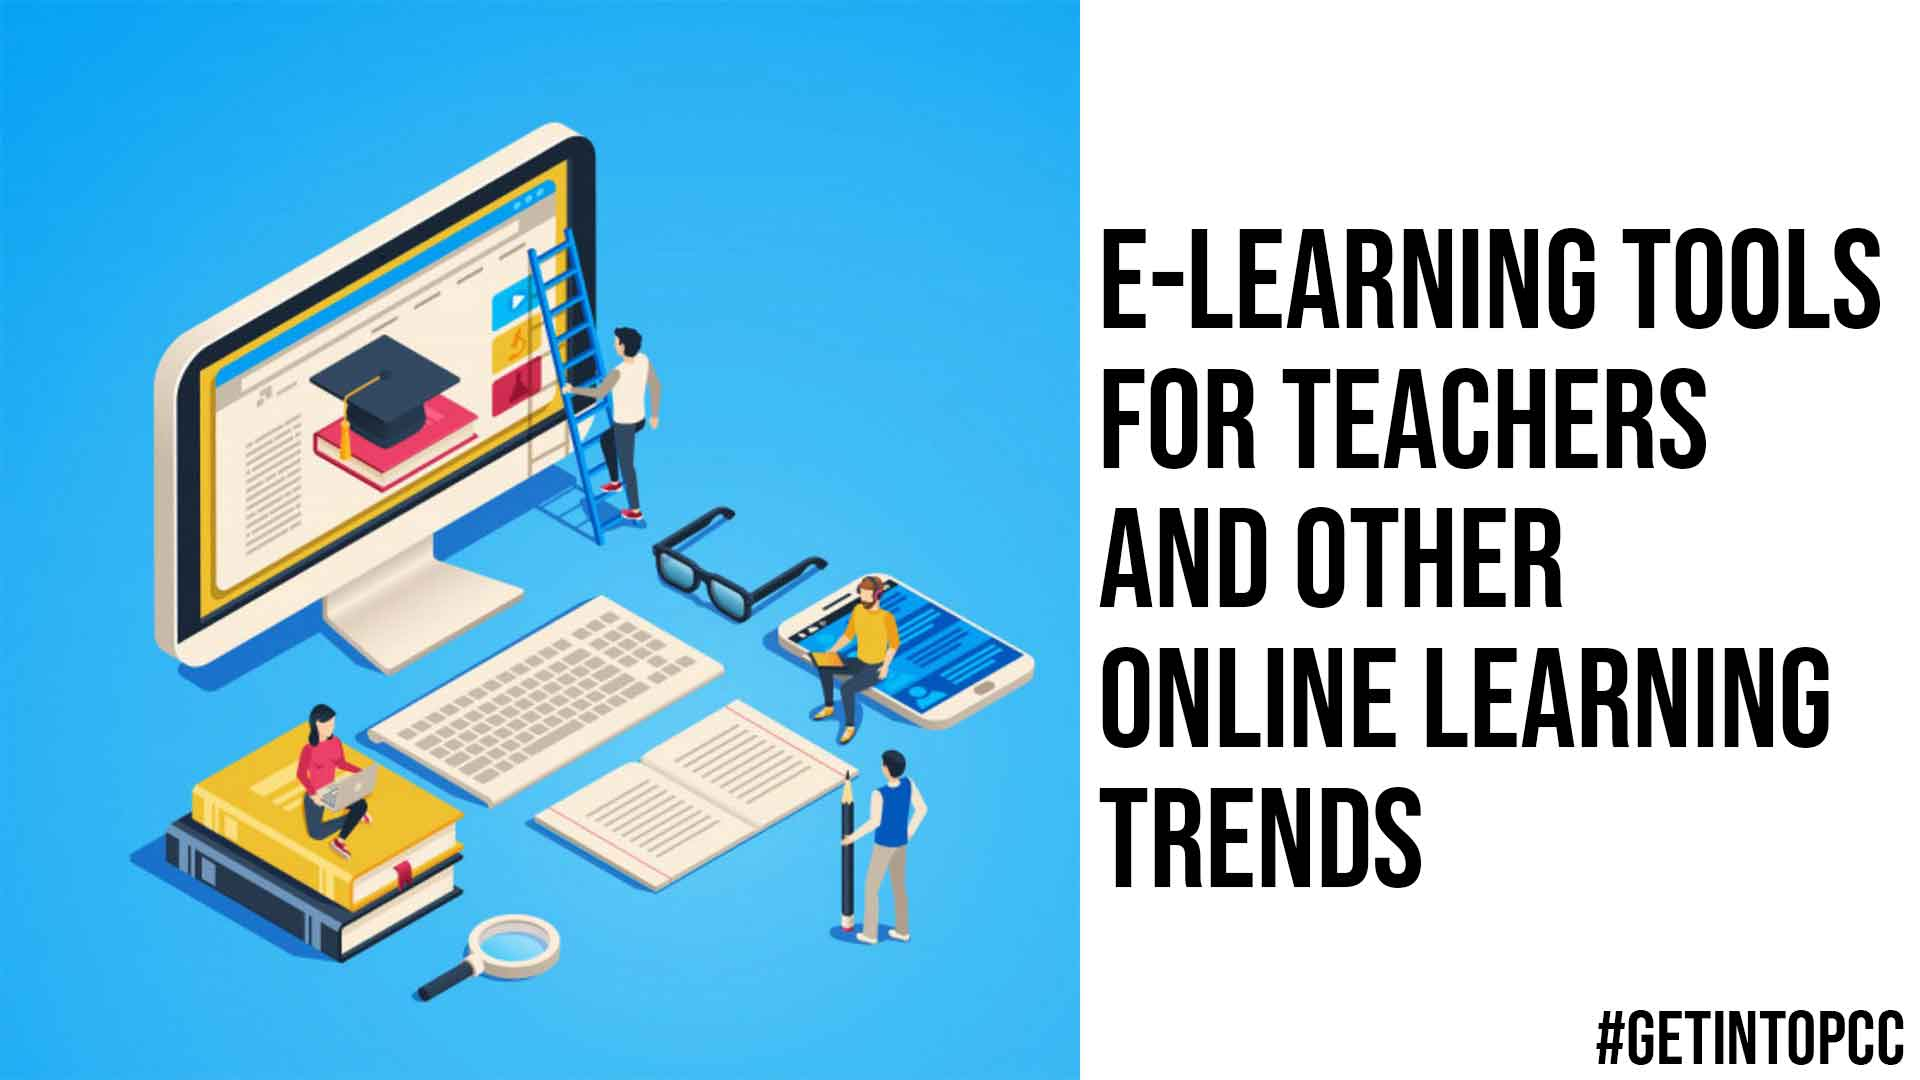 E Learning Tools For Teachers and Other Online Learning Trends